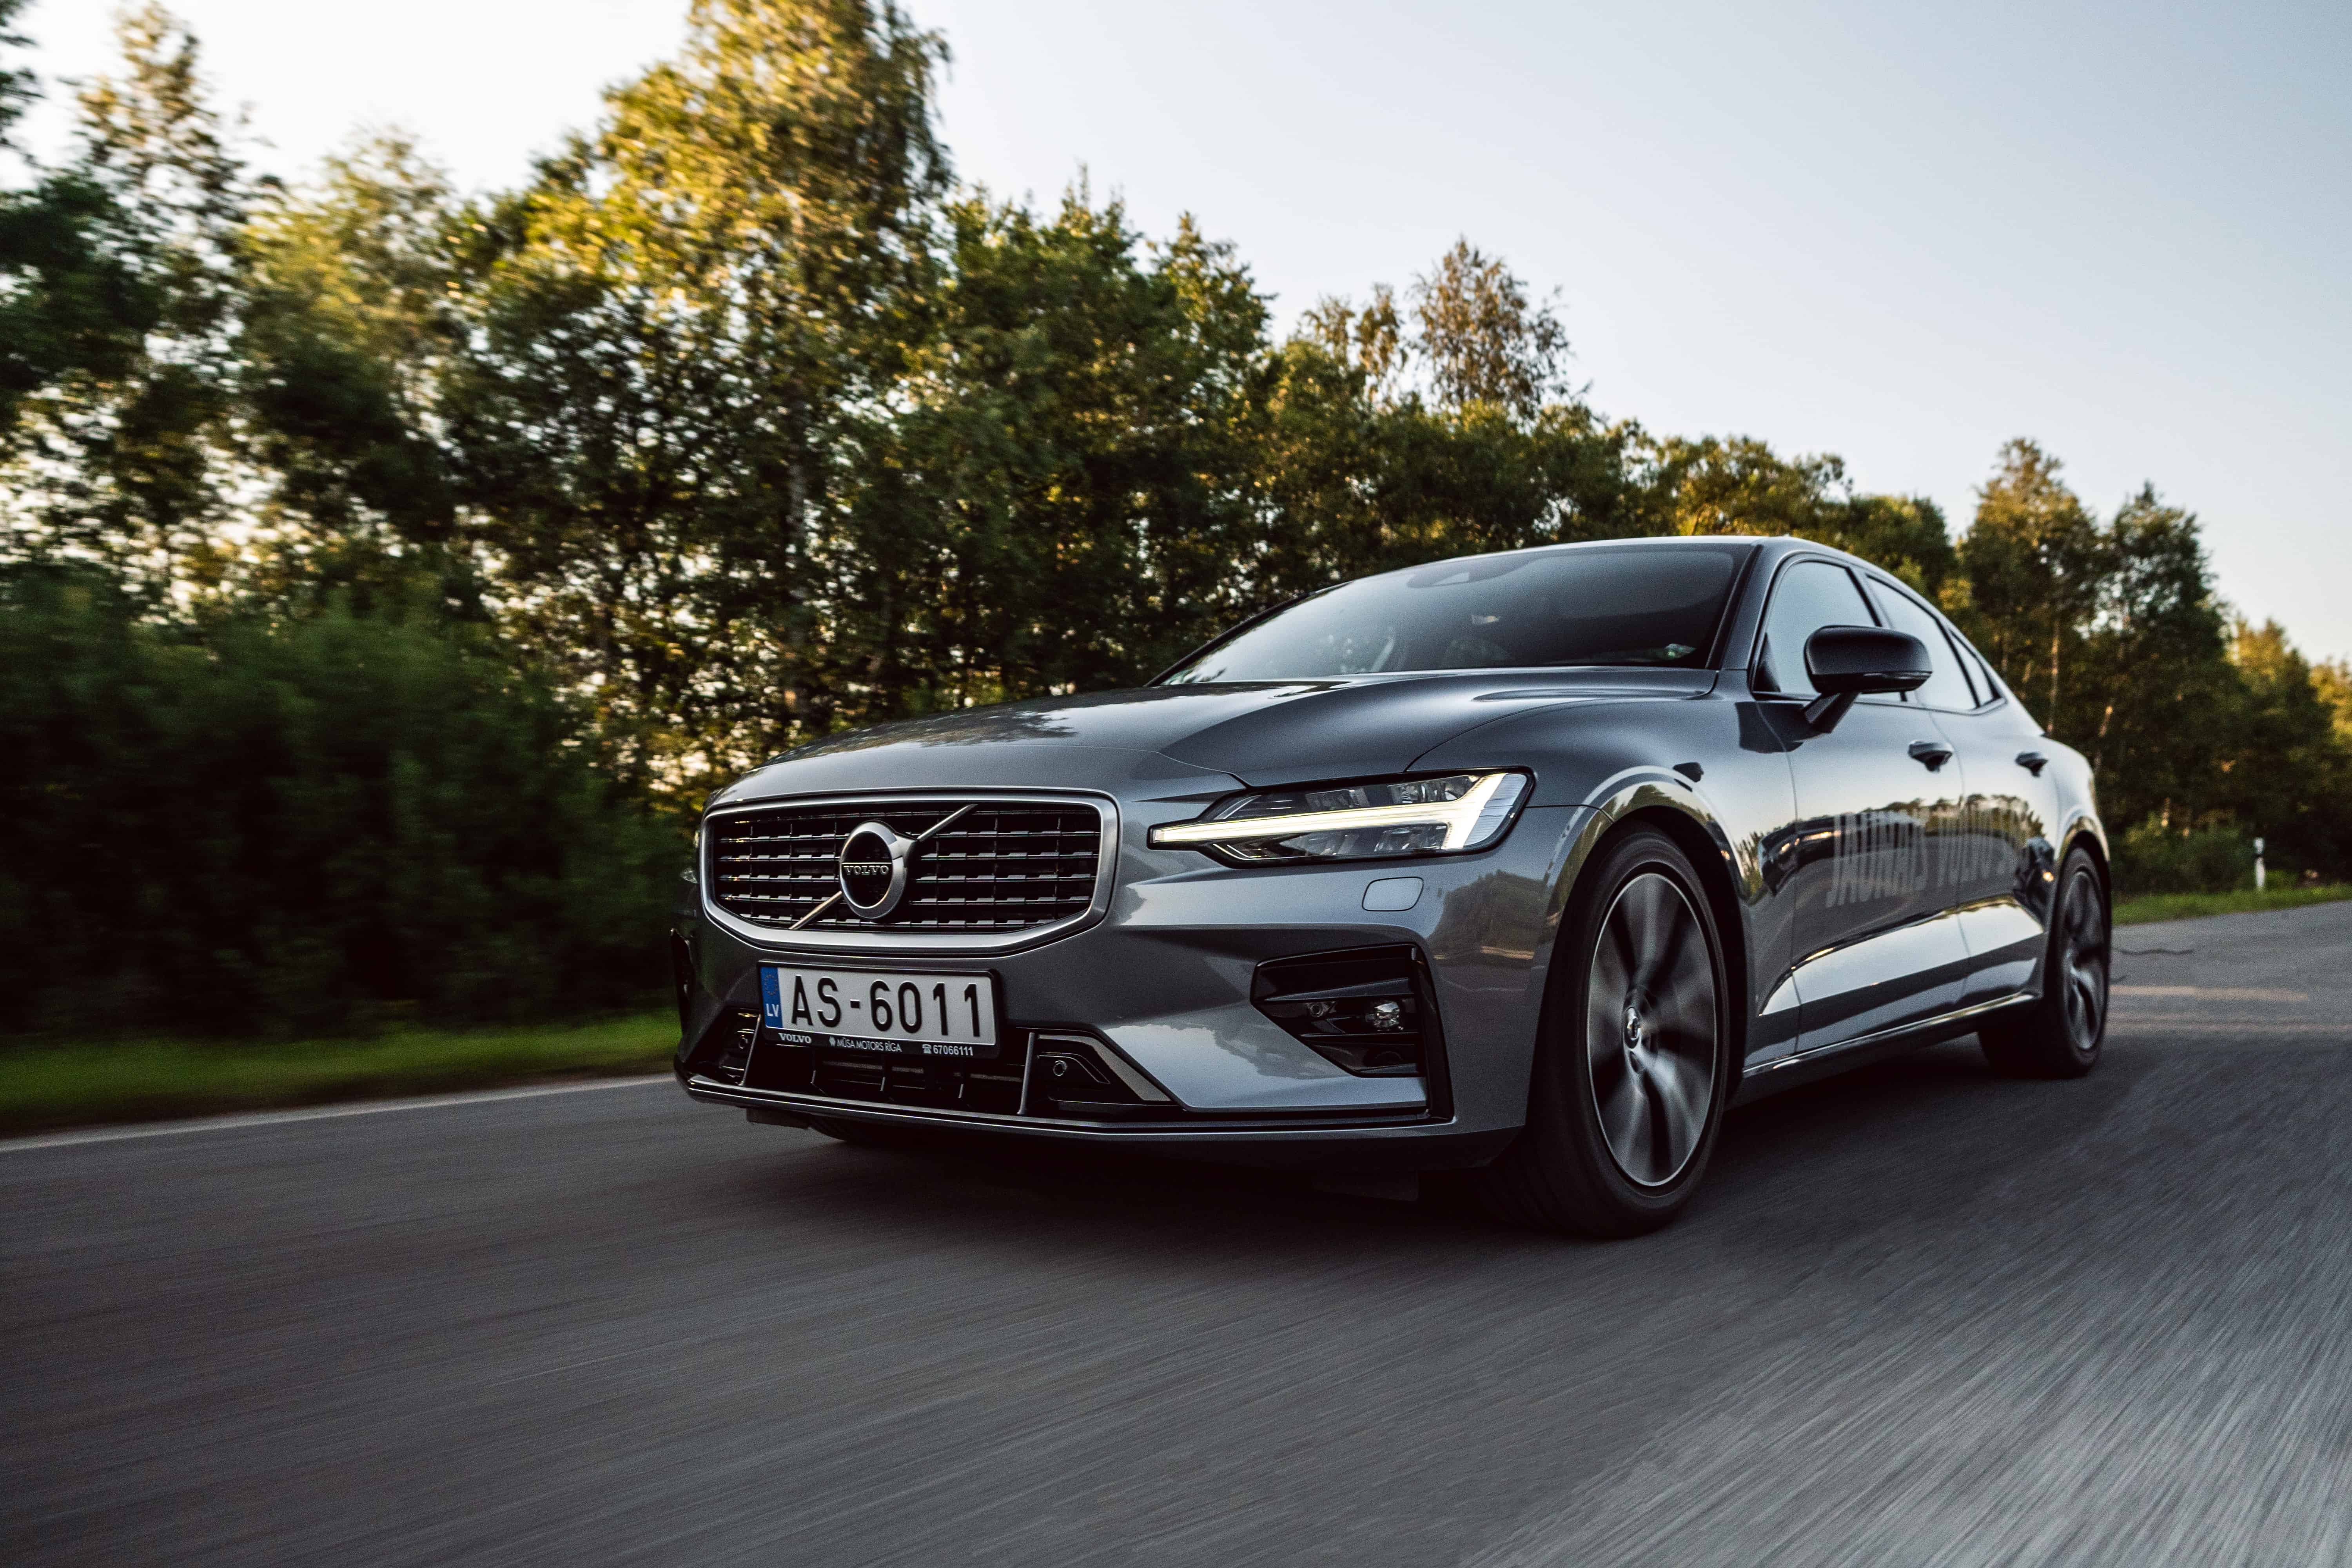 Some Volvo S60 owners to receive recall notice in June